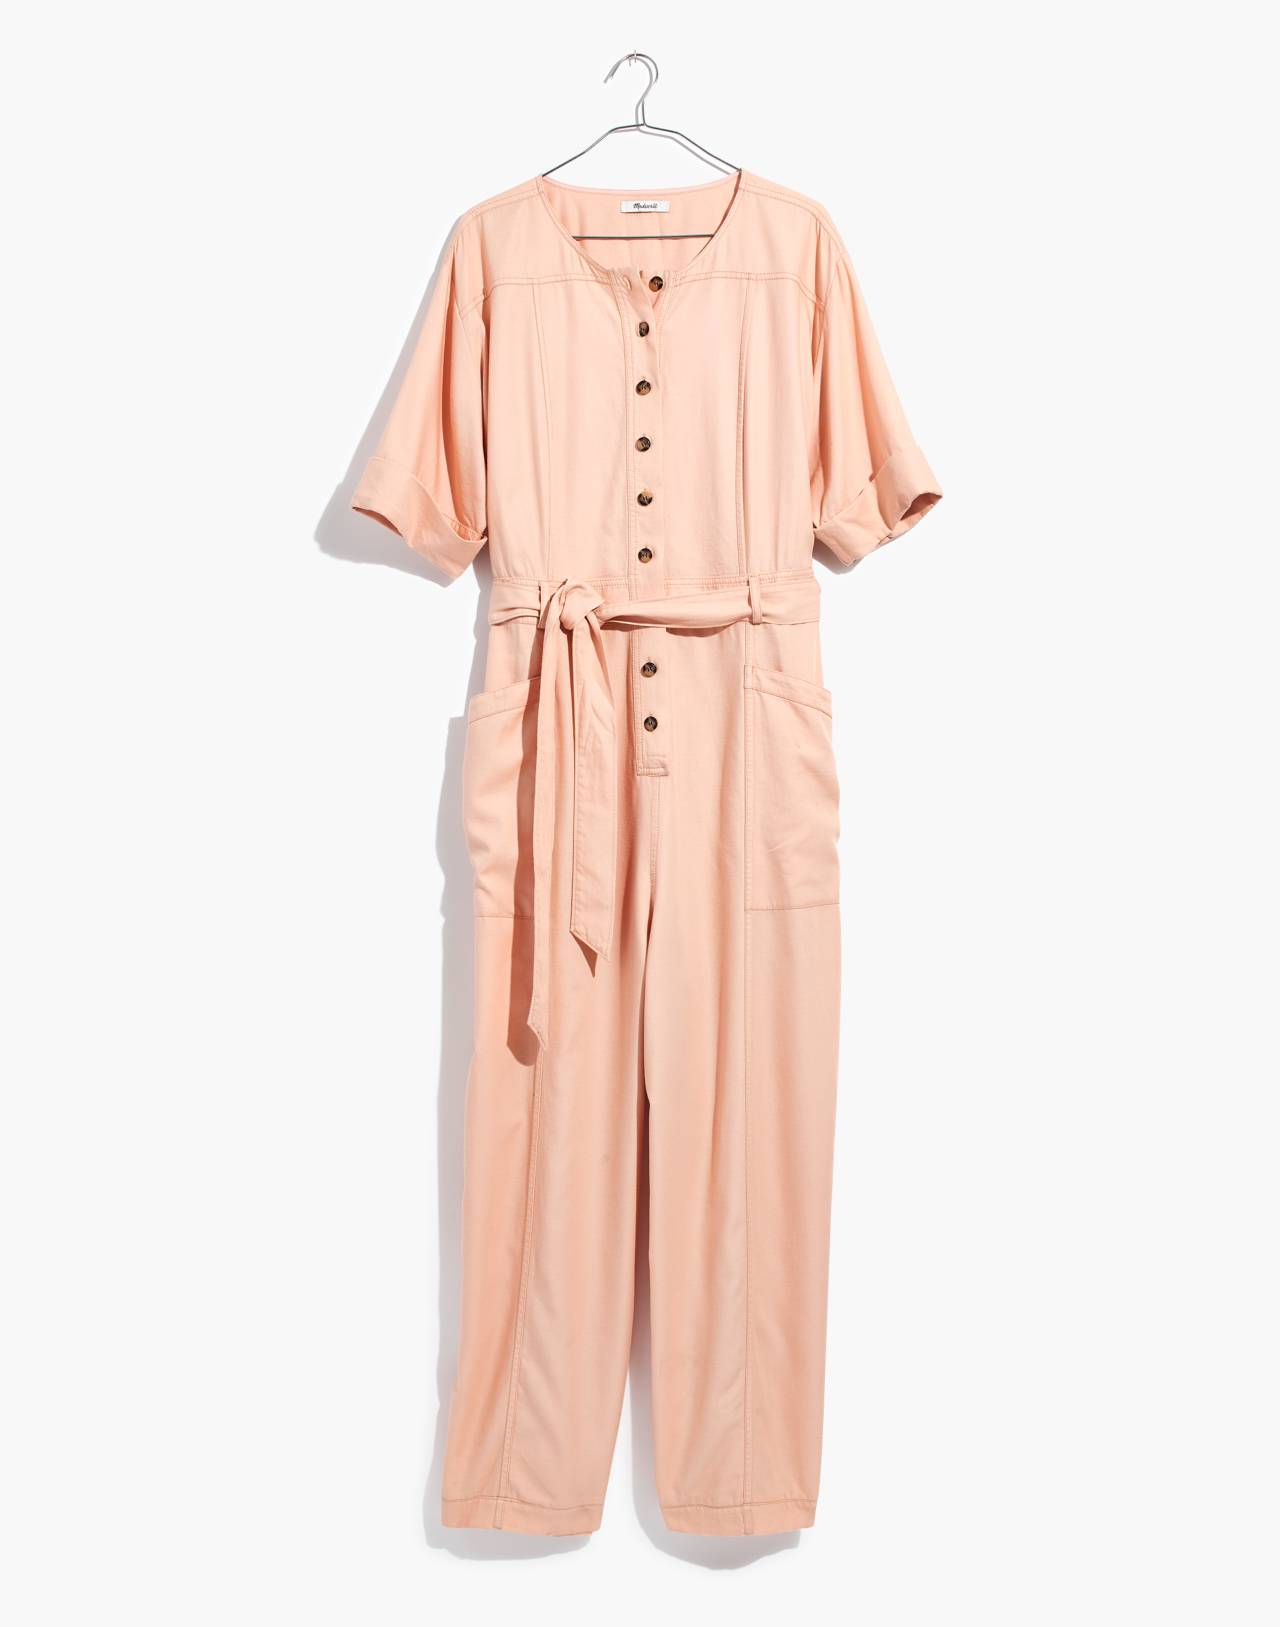 Top-Stitched Coverall Jumpsuit in bashful blush image 4